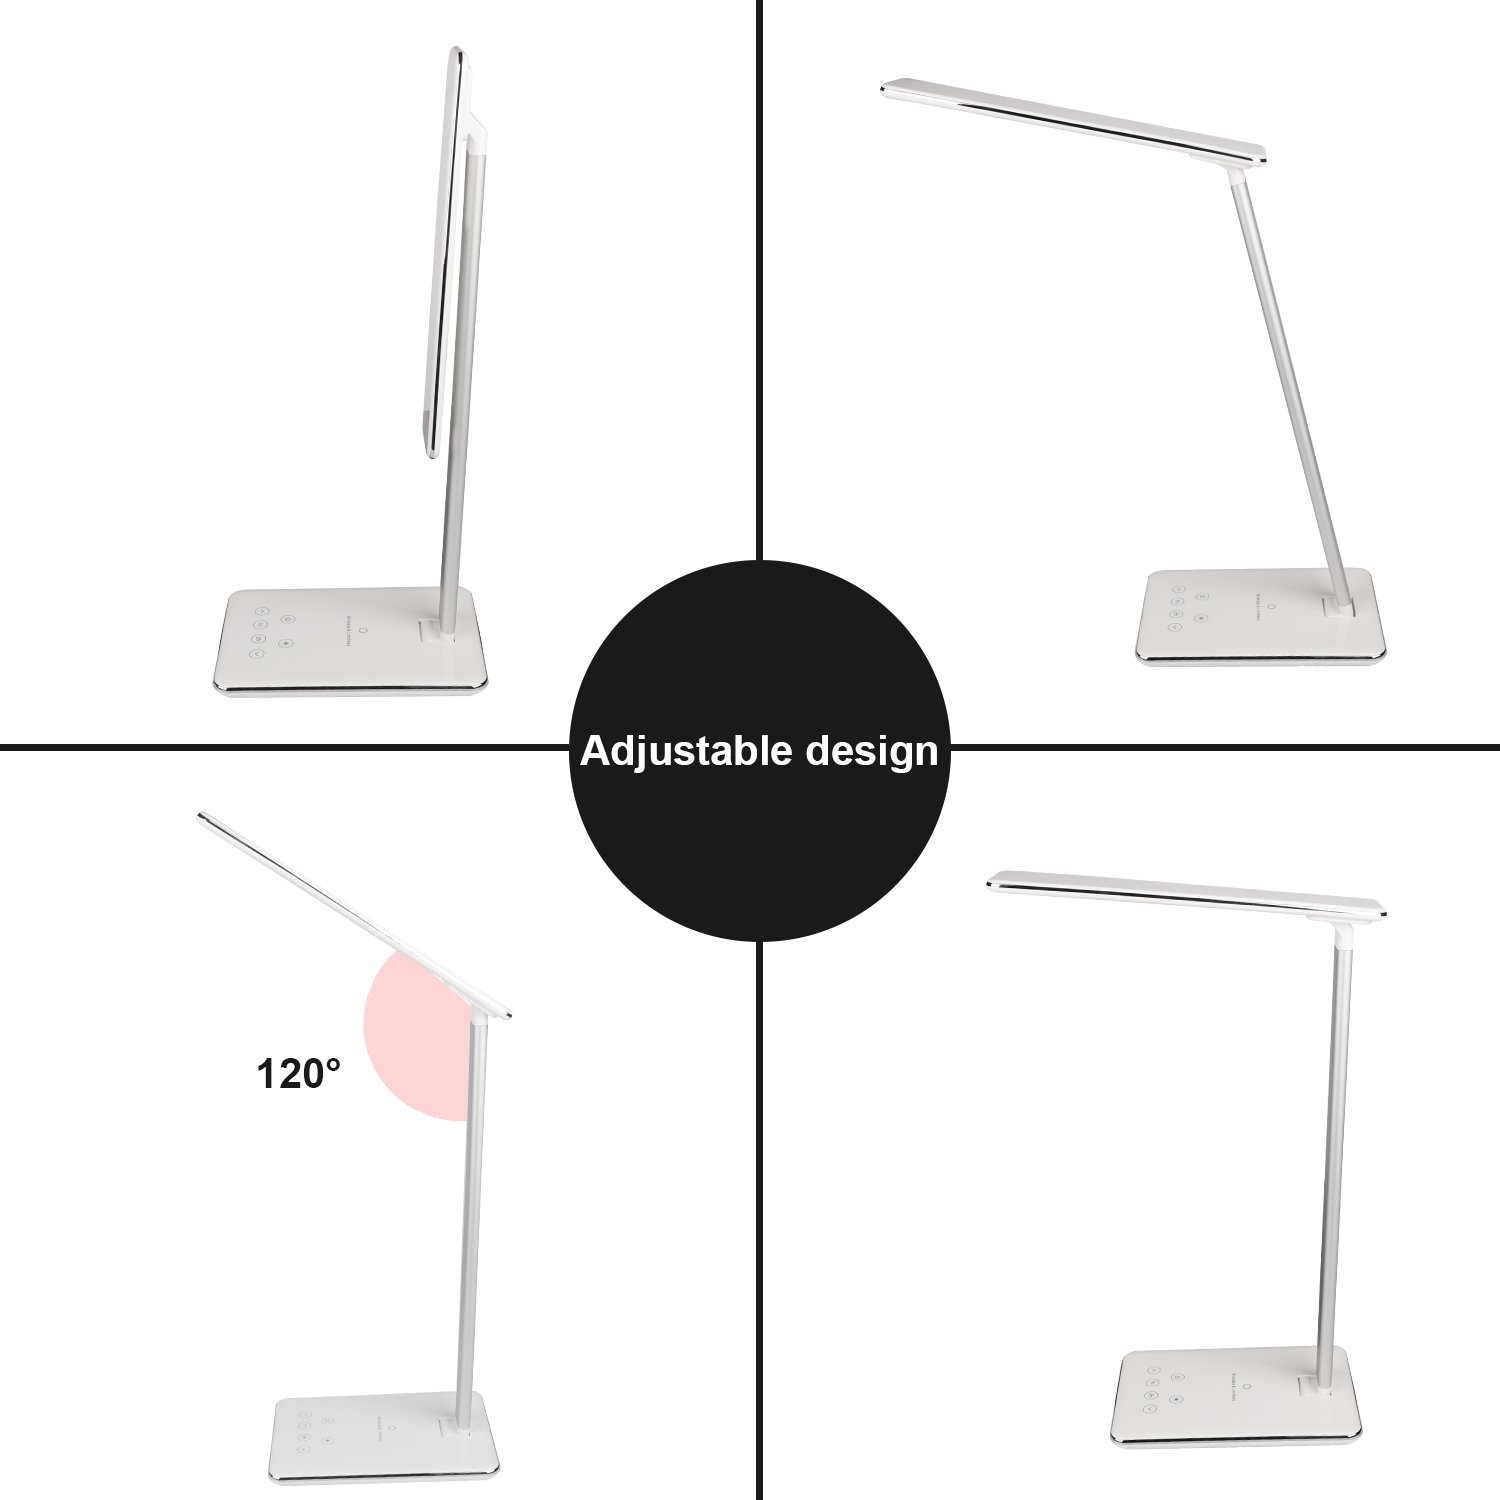 MACASA Led Desk Lamp Dimmable Table Lamp with Qi Wireless Charger for iPhone X / 8 Plus,4 Color Temperatures 6 Adjustable Brightness,Timer Setting,USB Charging Port,Touch Control& Memory Function by MACASA (Image #4)